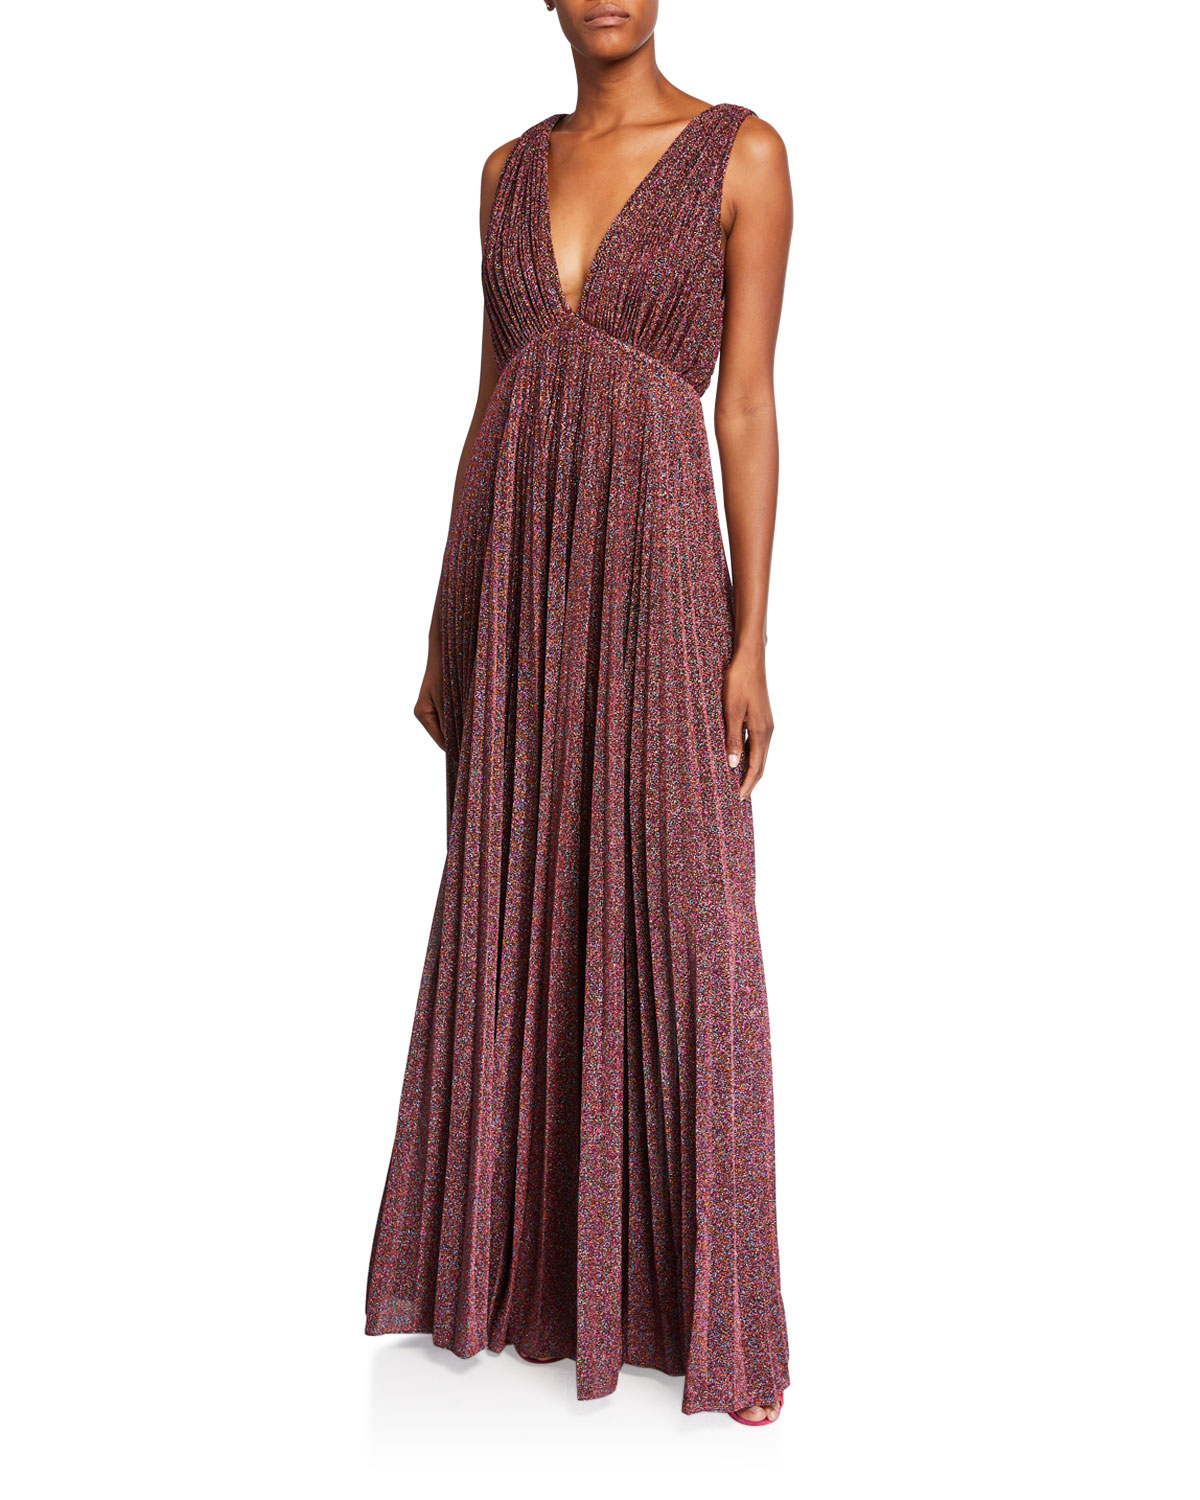 Jill Stuart METALLIC KNIT V-NECK SLEEVELESS PLEATED GOWN